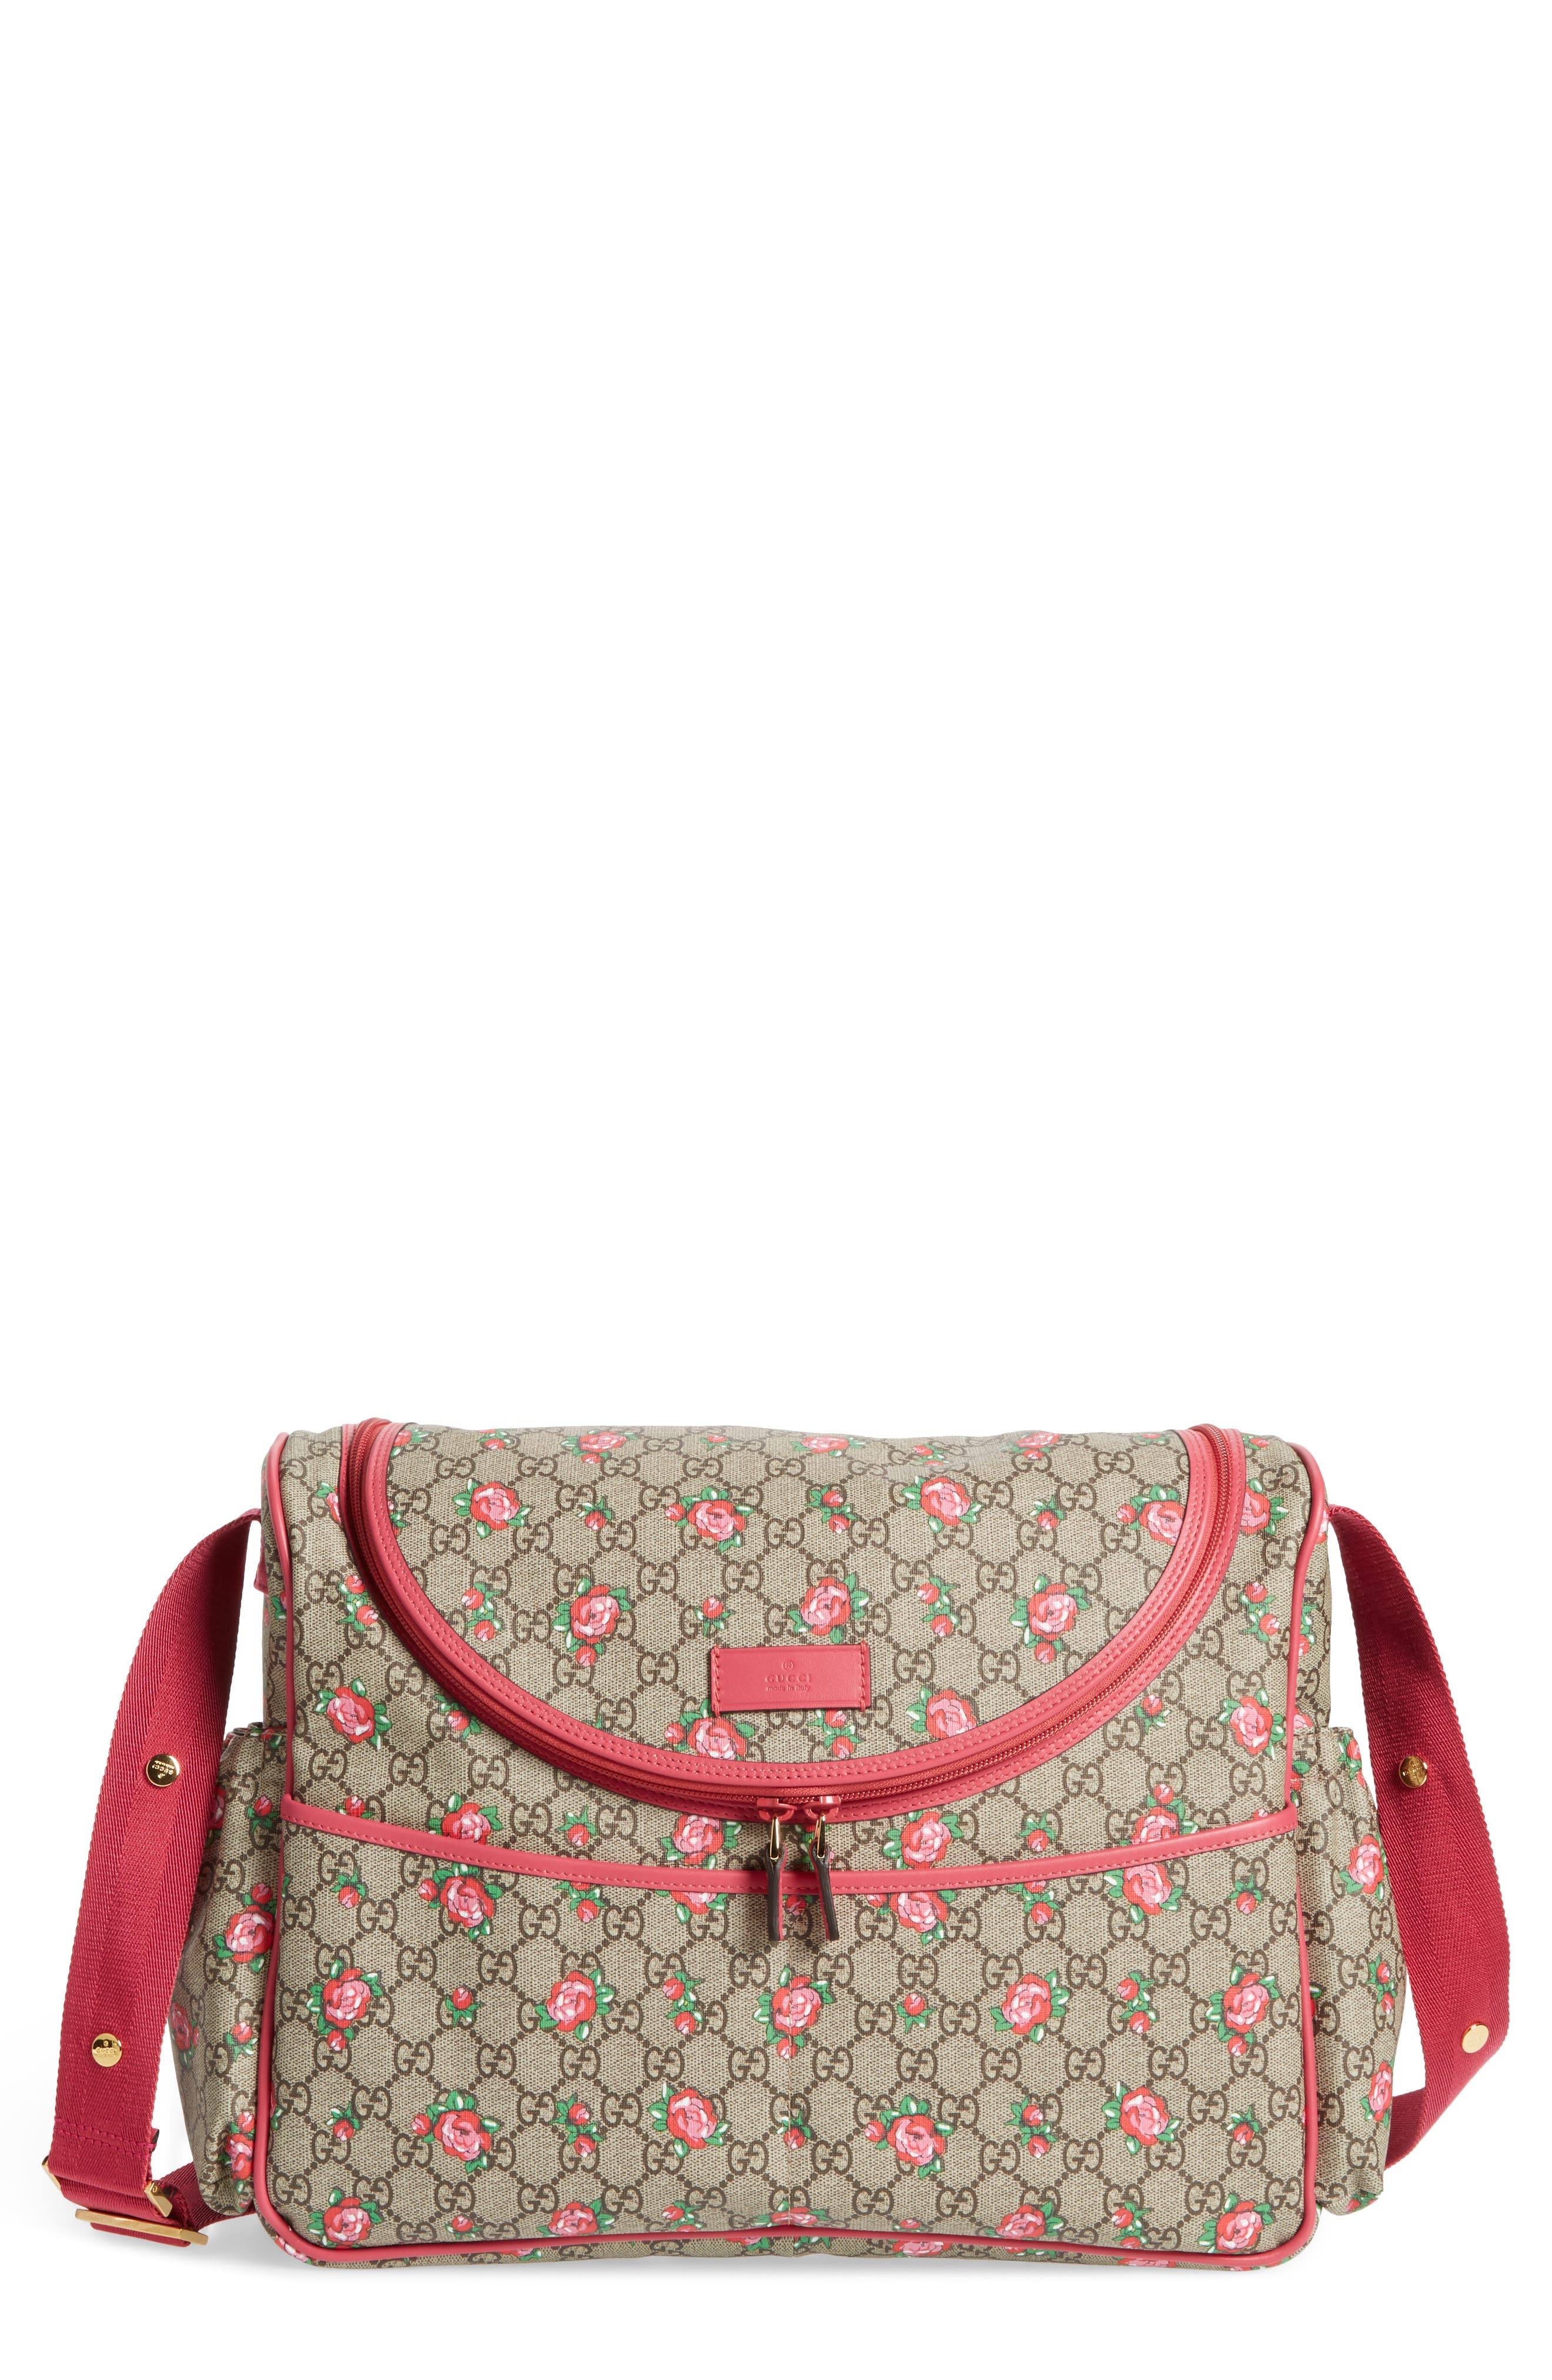 Main Image - Gucci Rose Bud GG Supreme Diaper Bag